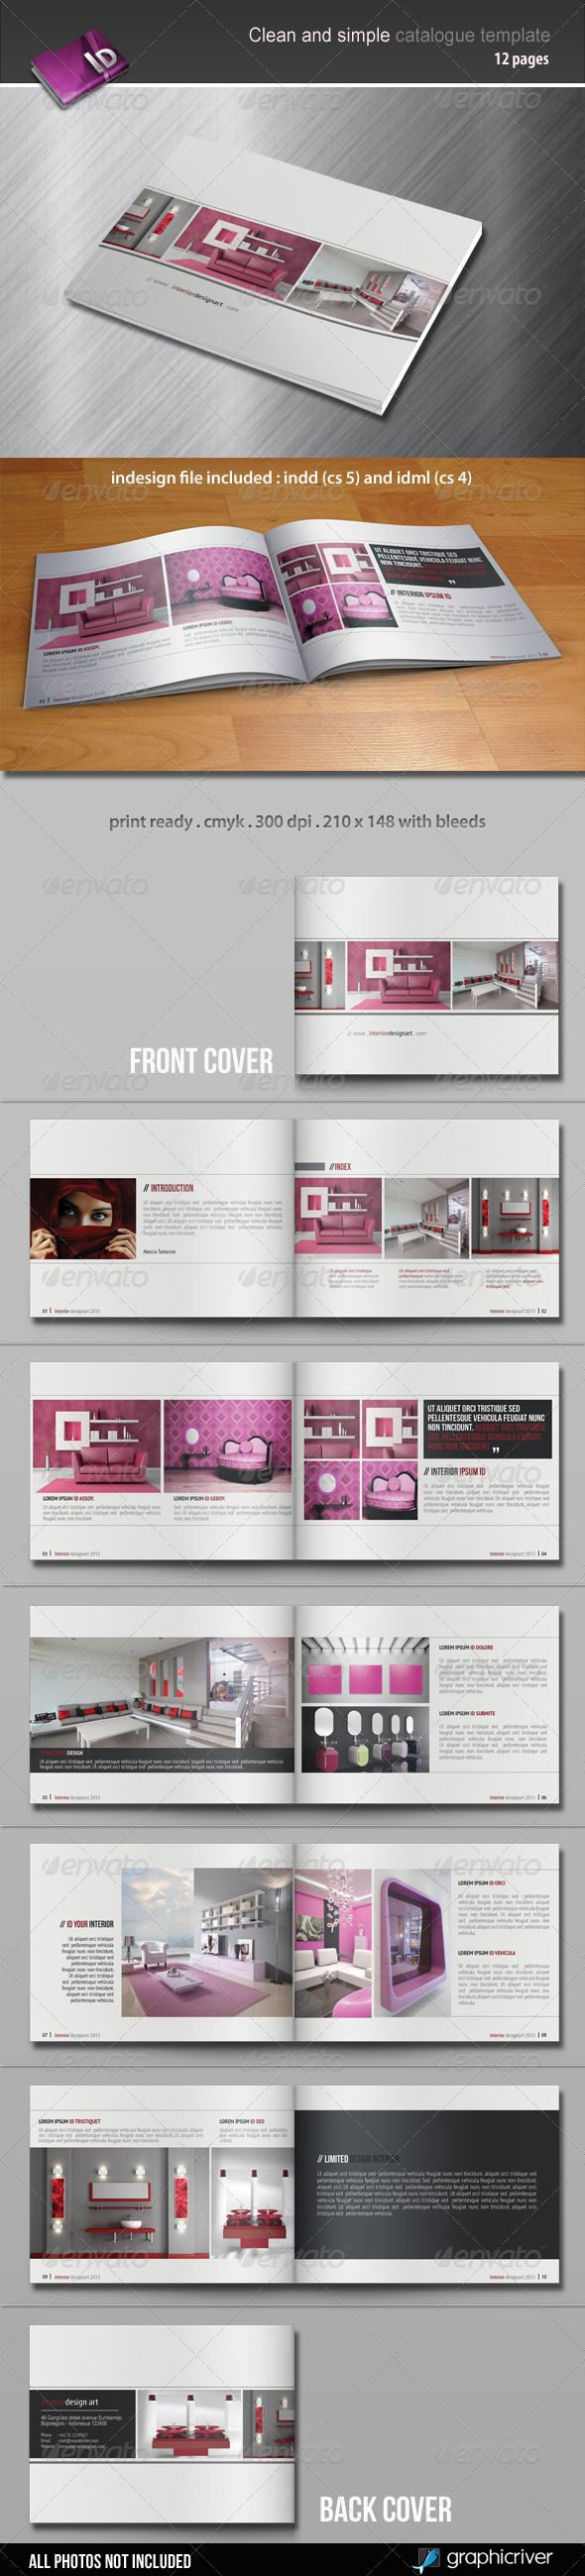 10 best under images on pinterest brochure template brochure